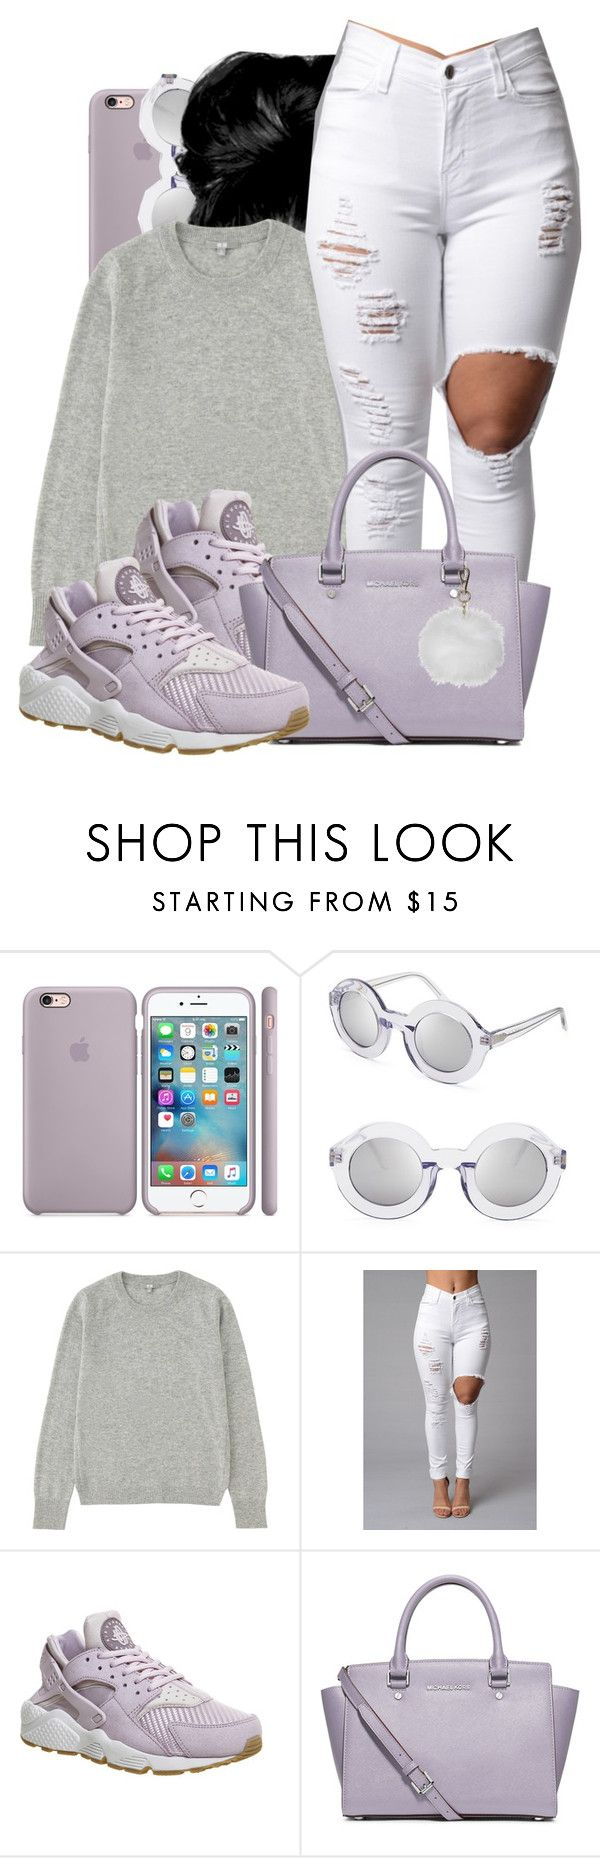 """Untitled #581"" by b-elkstone ❤ liked on Polyvore featuring Wildfox, Uniqlo, NIKE, MICHAEL Michael Kors and Topshop"